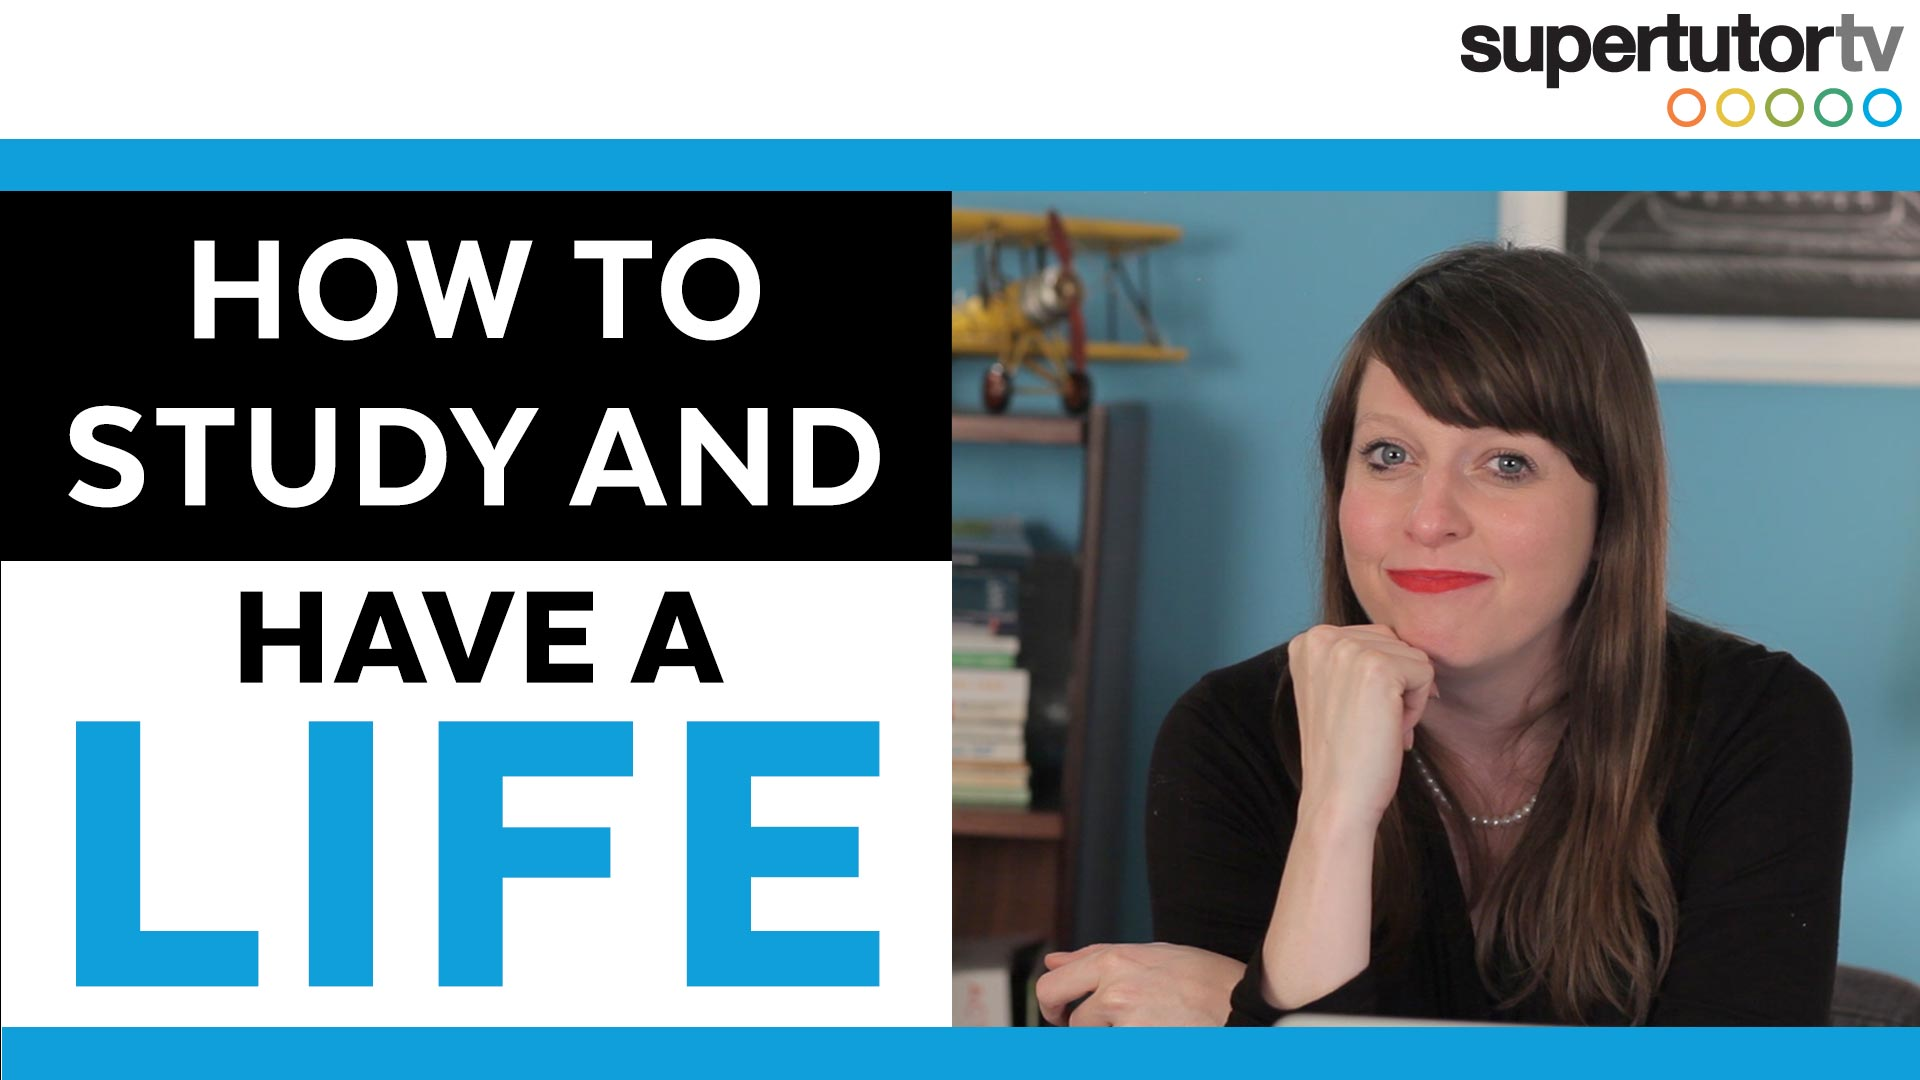 How To Study and Have a Life: Tips on Finding Balance Between Work and Play